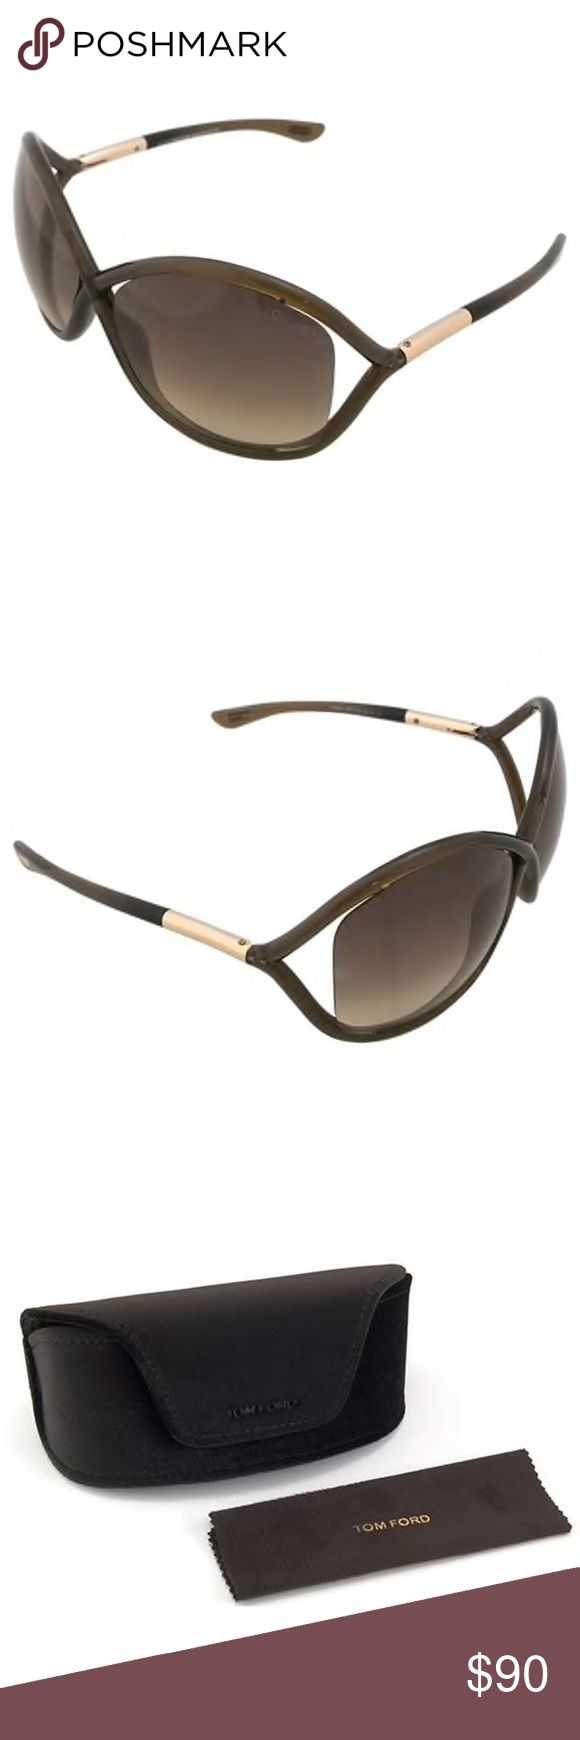 Tom Ford Whitney Sunglasses Tom Ford Whitney Sunglasses Authentic Worn only a few times; like new condition Frames are dark olive green slate gray color Case included Tom Ford Accessories Sunglasses